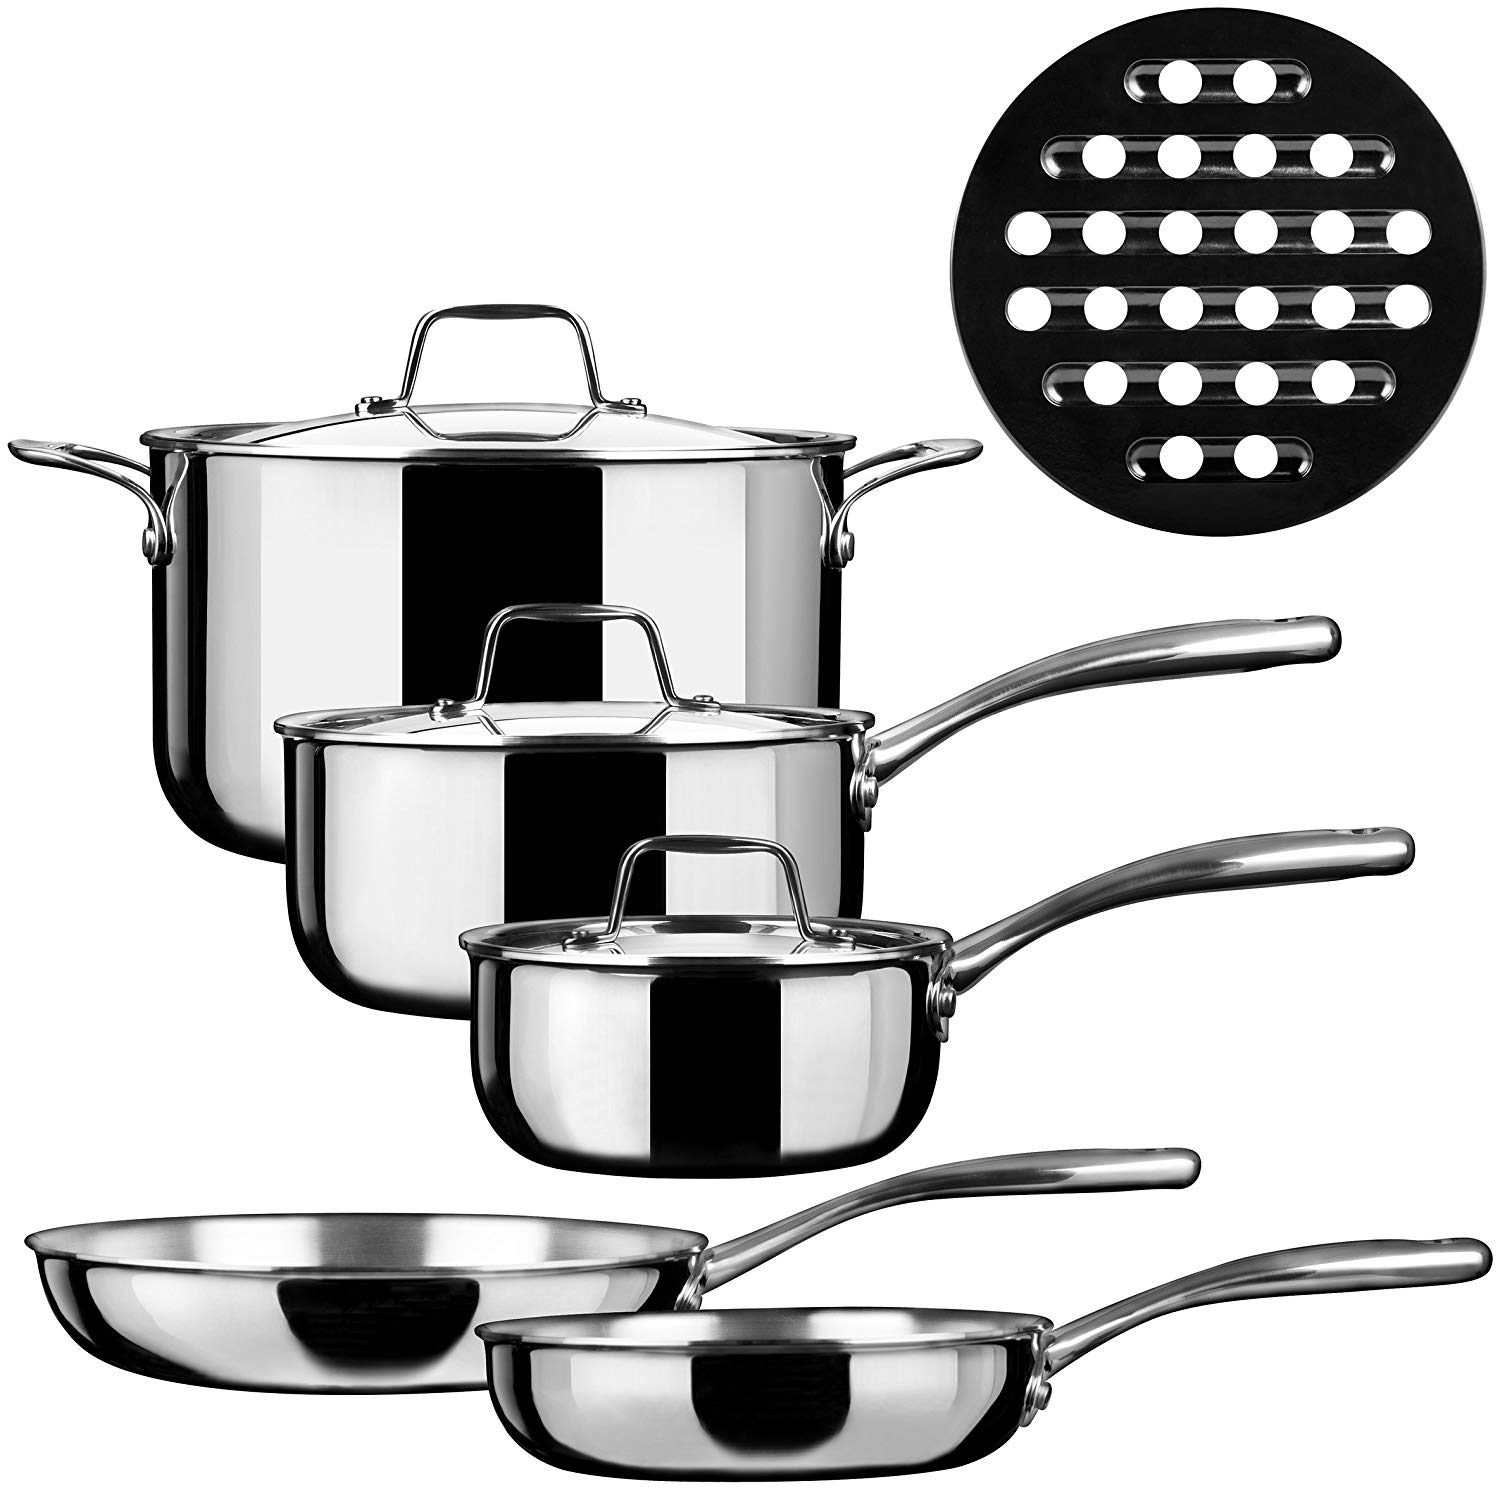 10 Best Induction Cookware Sets In 2020